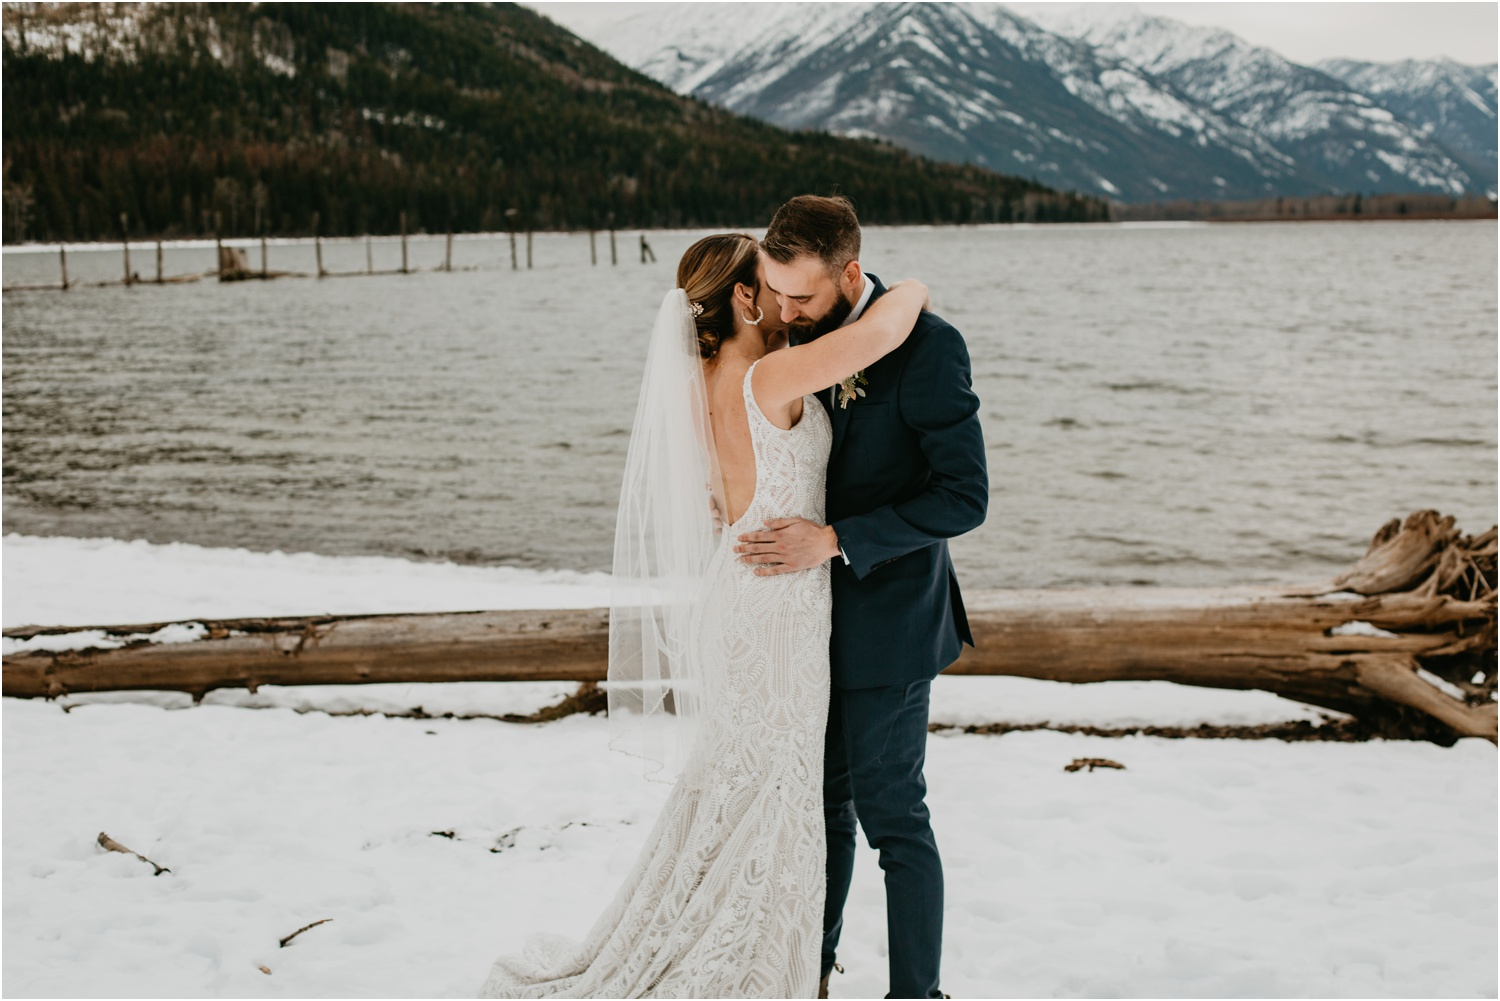 st mary lake elopement wedding, kimberley wedding photography, kimberley bc wedding, kimberley bc wedding photographer, cranbrook wedding, cranbrook elopement, cranbrook elopement photographer, kimberley bc elopement, st mary lake elopement wedding photographer, st mary lake ceremony, st mary lake wedding photographerCourtney Jess Photography,East Kootenay Photographer,Fernie Photographer,Fernie Wedding Photographer,Golden BC,Golden BC Wedding Photographer,Golden BC Weddings,Kimberley BC Elopement,Kimberley BC Photographer,Kimberley BC Weddings,Mjs florist,boho couples,cranbrook elopement,cranbrook wedding photographer,east kootenay elopement,east_kootenay_elopement,kimberley bc elopement photography,kimberley_elopement_photographer,mjs flowers,st marys lake elopement,st marys lake wedding,st marys lake wedding photographer,st_marys_lake_elopement,the romantiks florals,the_romantiks,